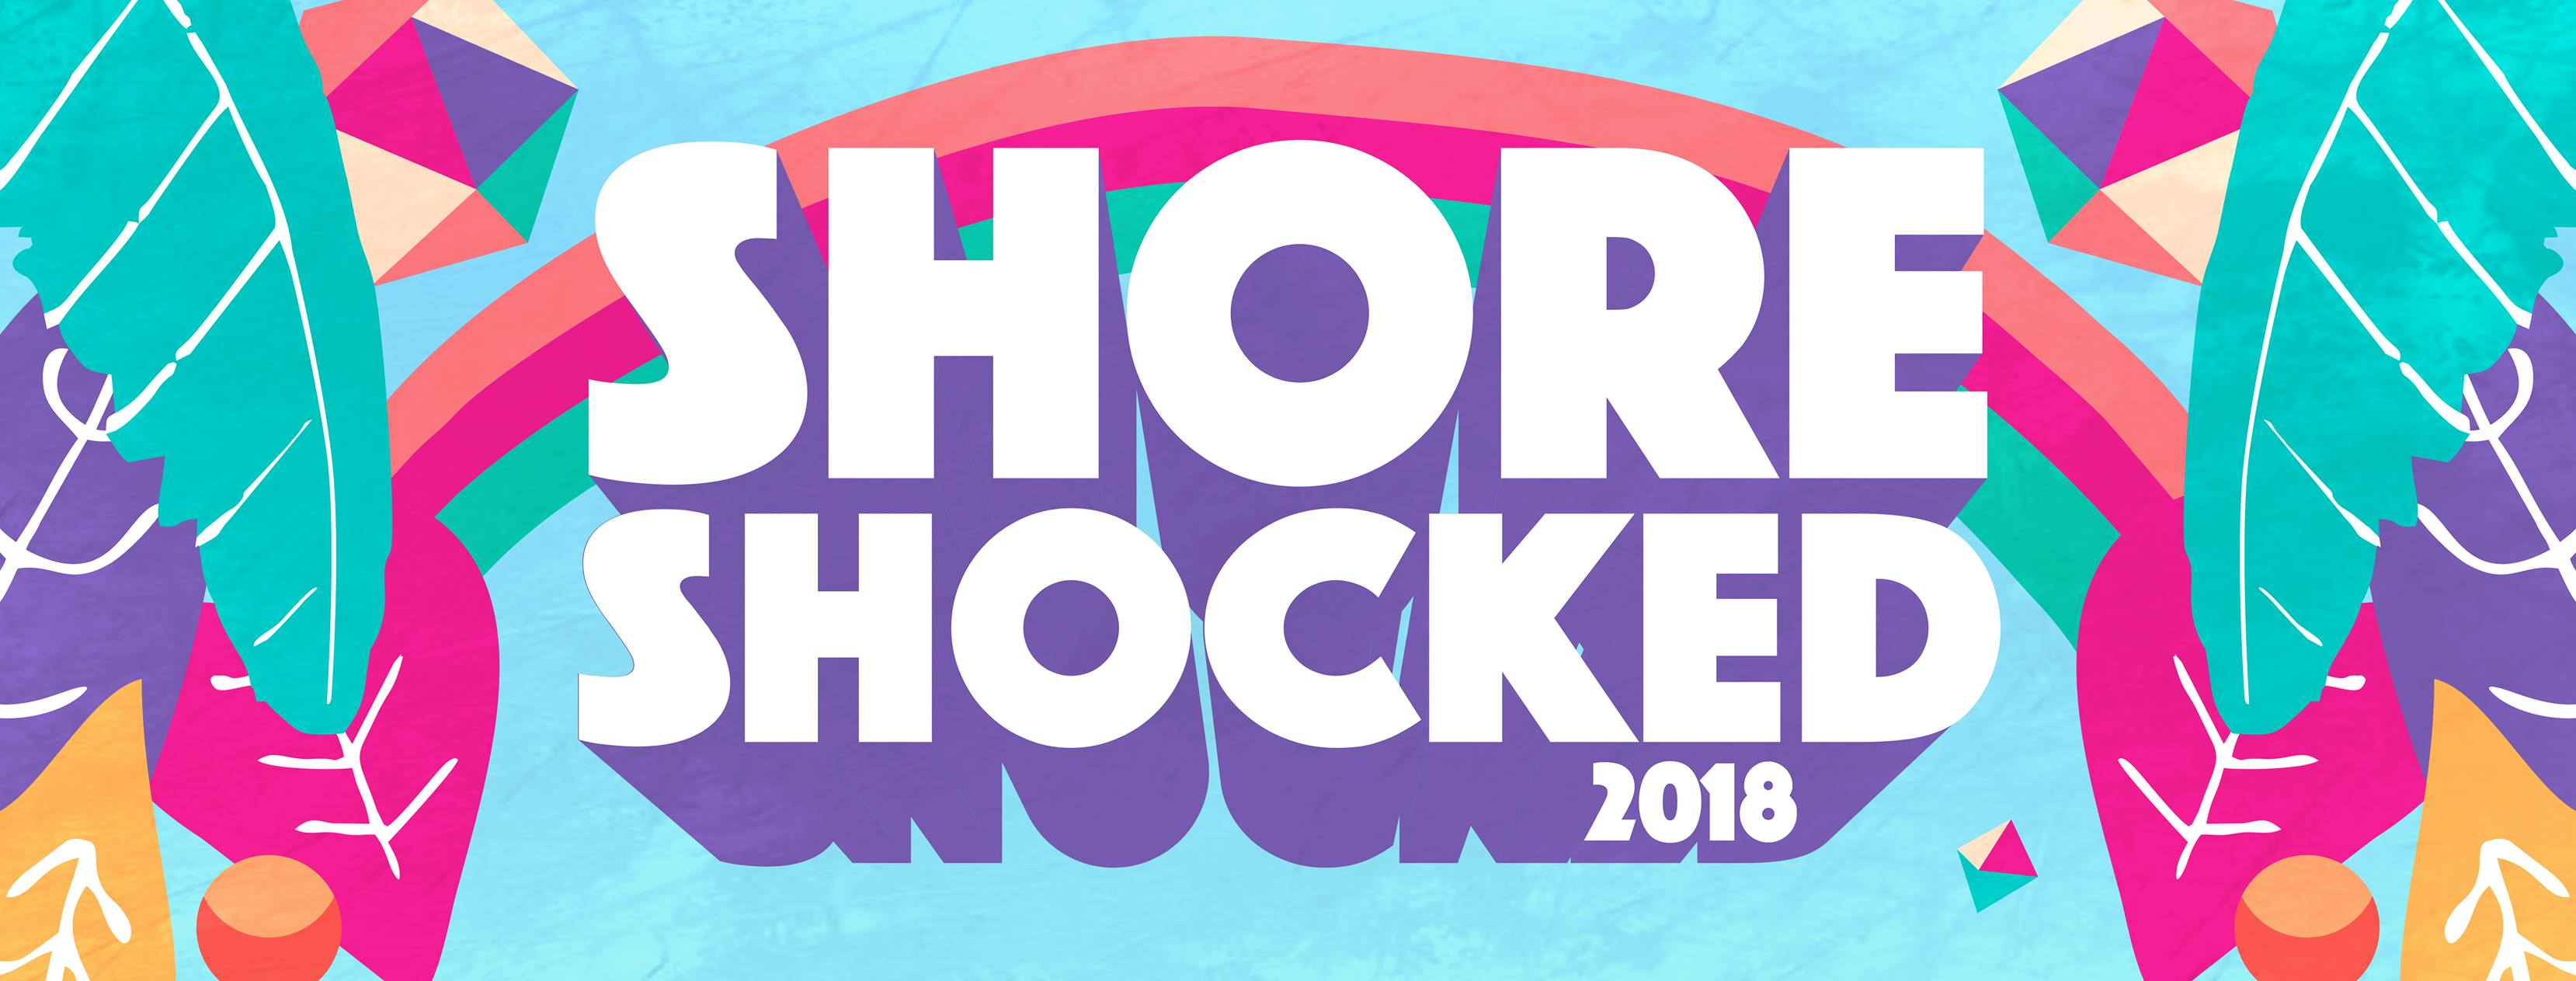 ShoreShocked 2018 [North Sydney]